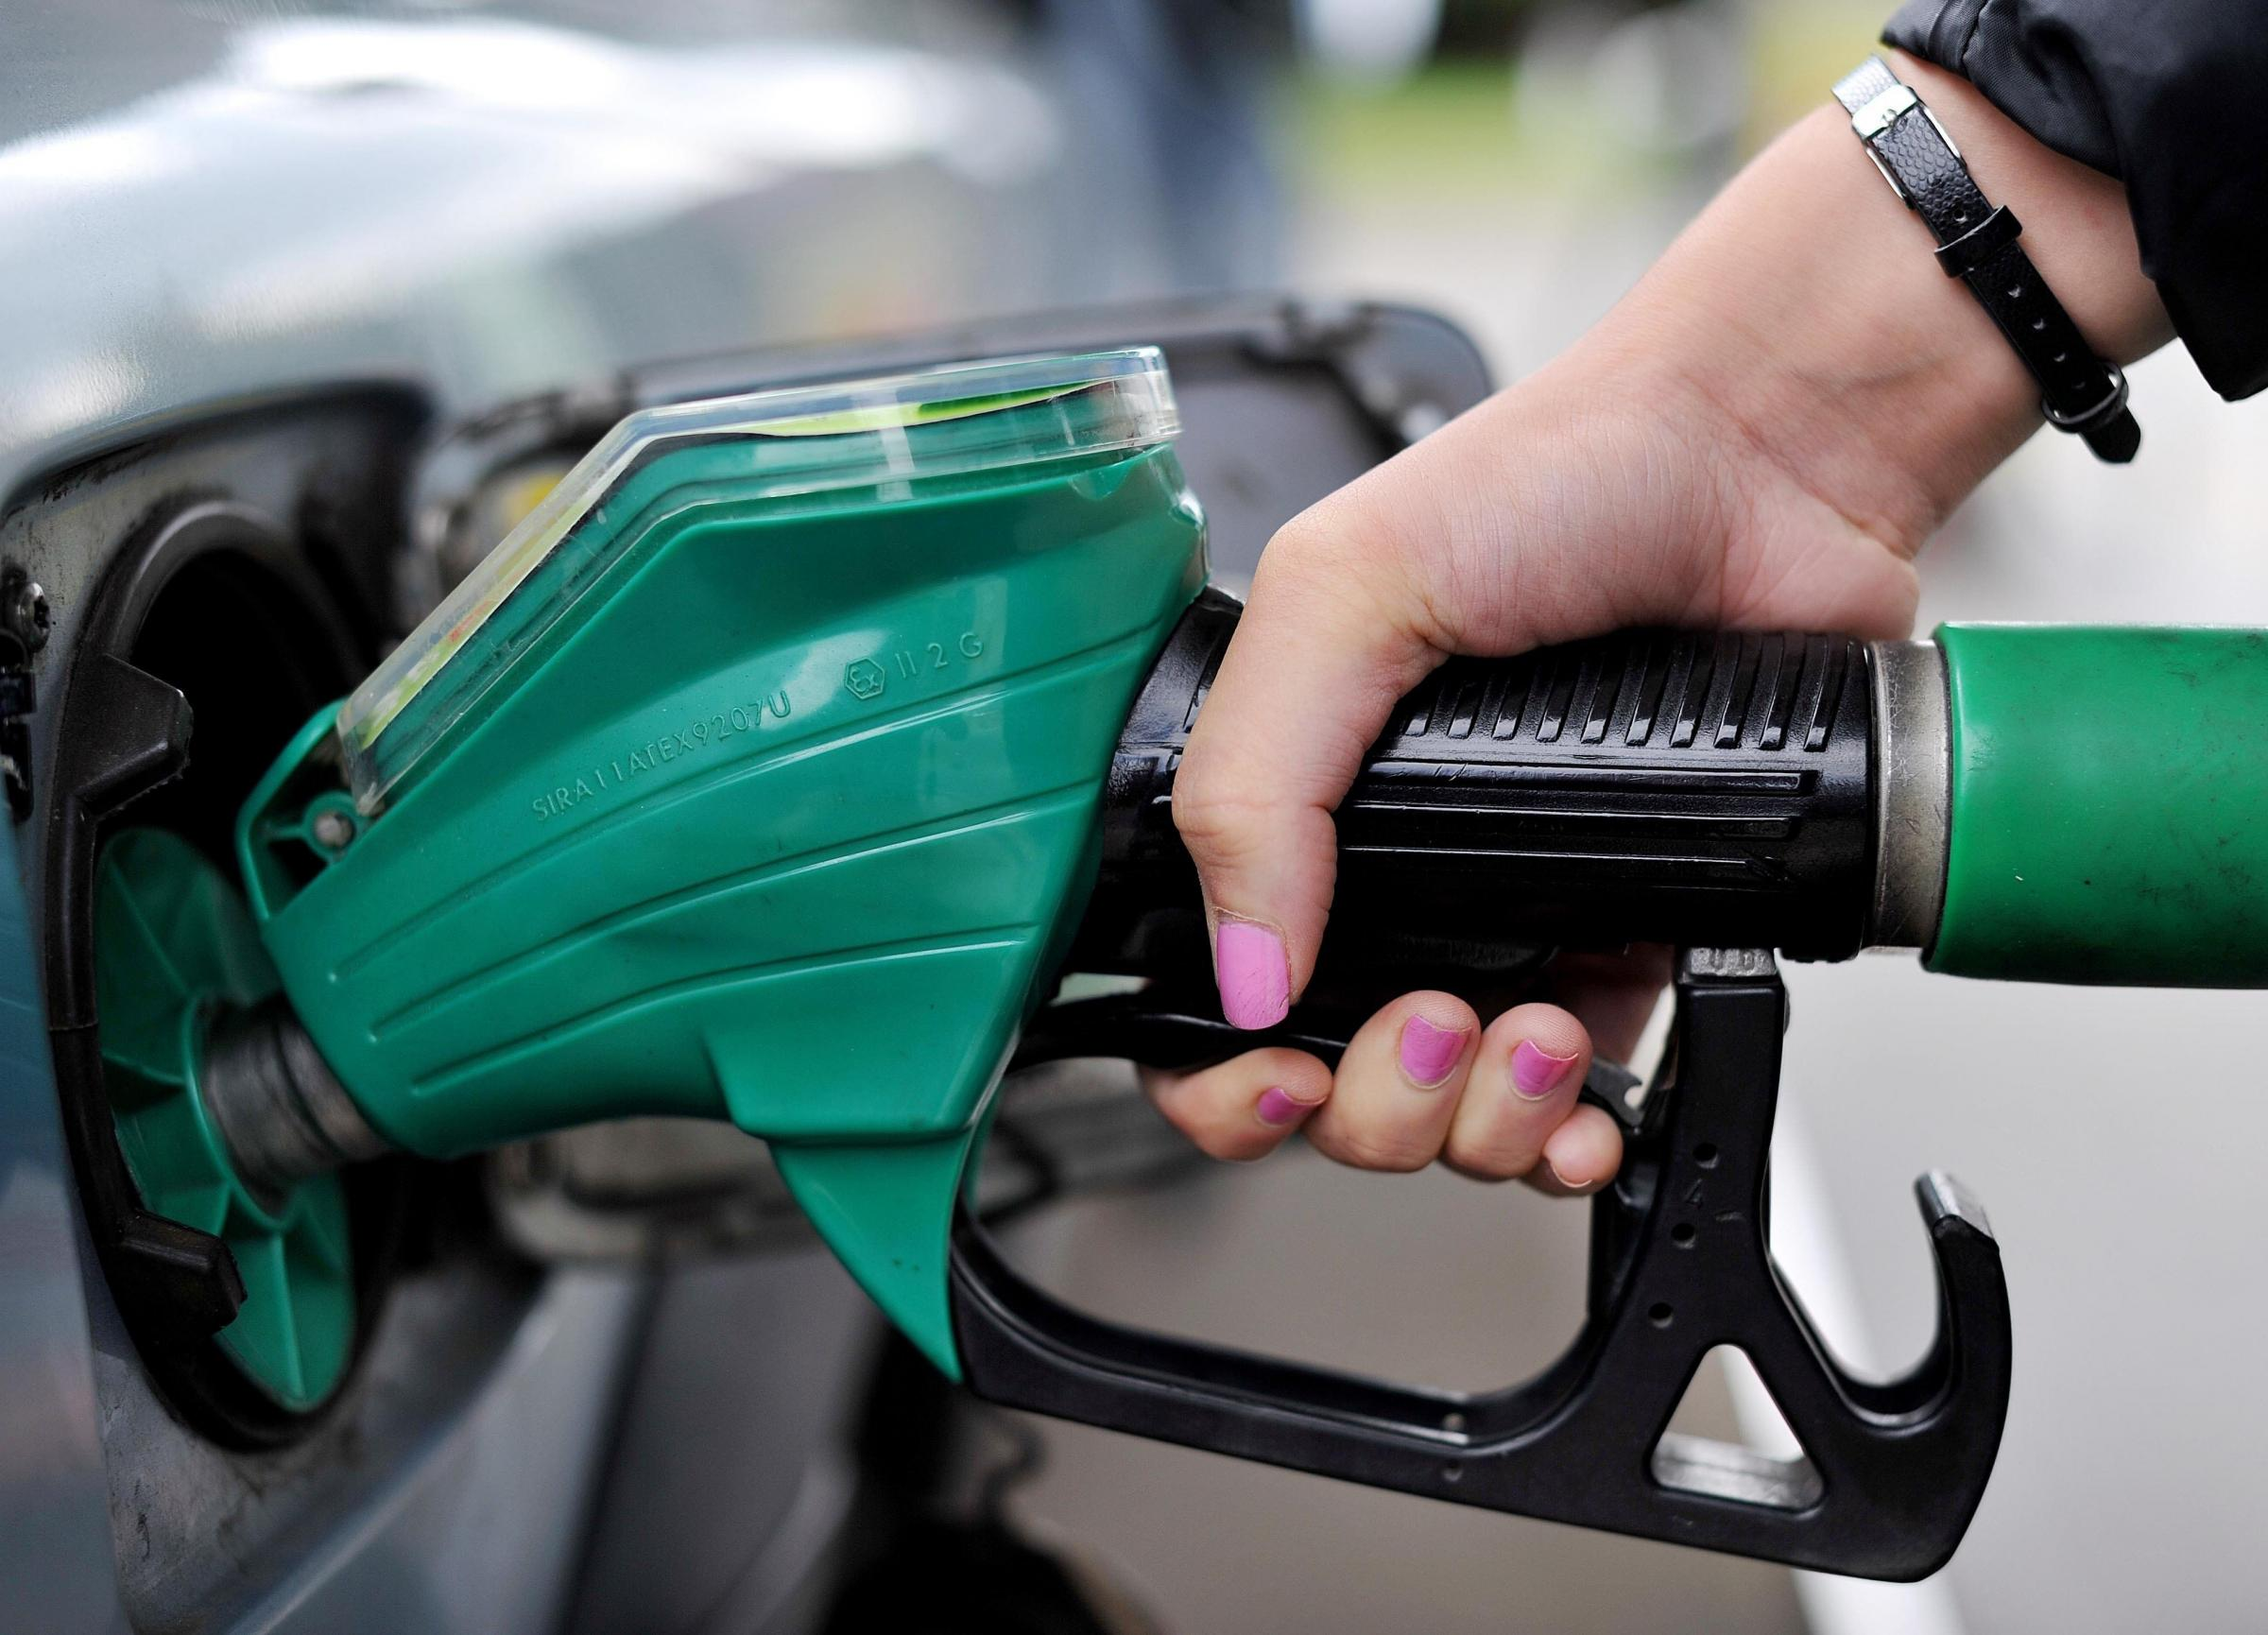 Fuel prices at a three-and-a-half year high (but here's where it's cheapest)